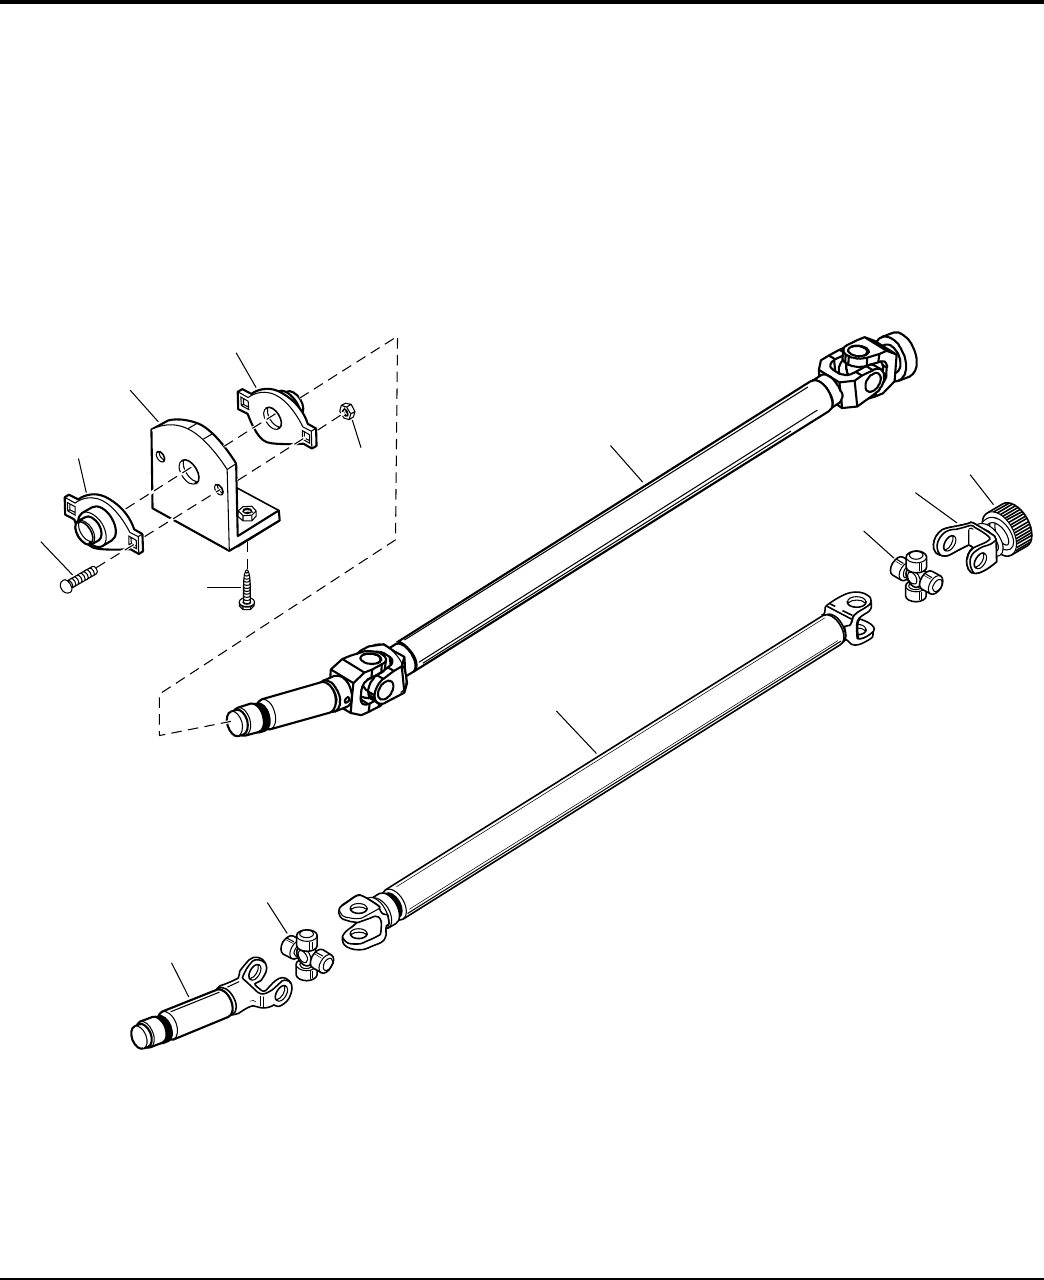 Page 8 of Simplicity Snow Blower Attachment 1694403 User